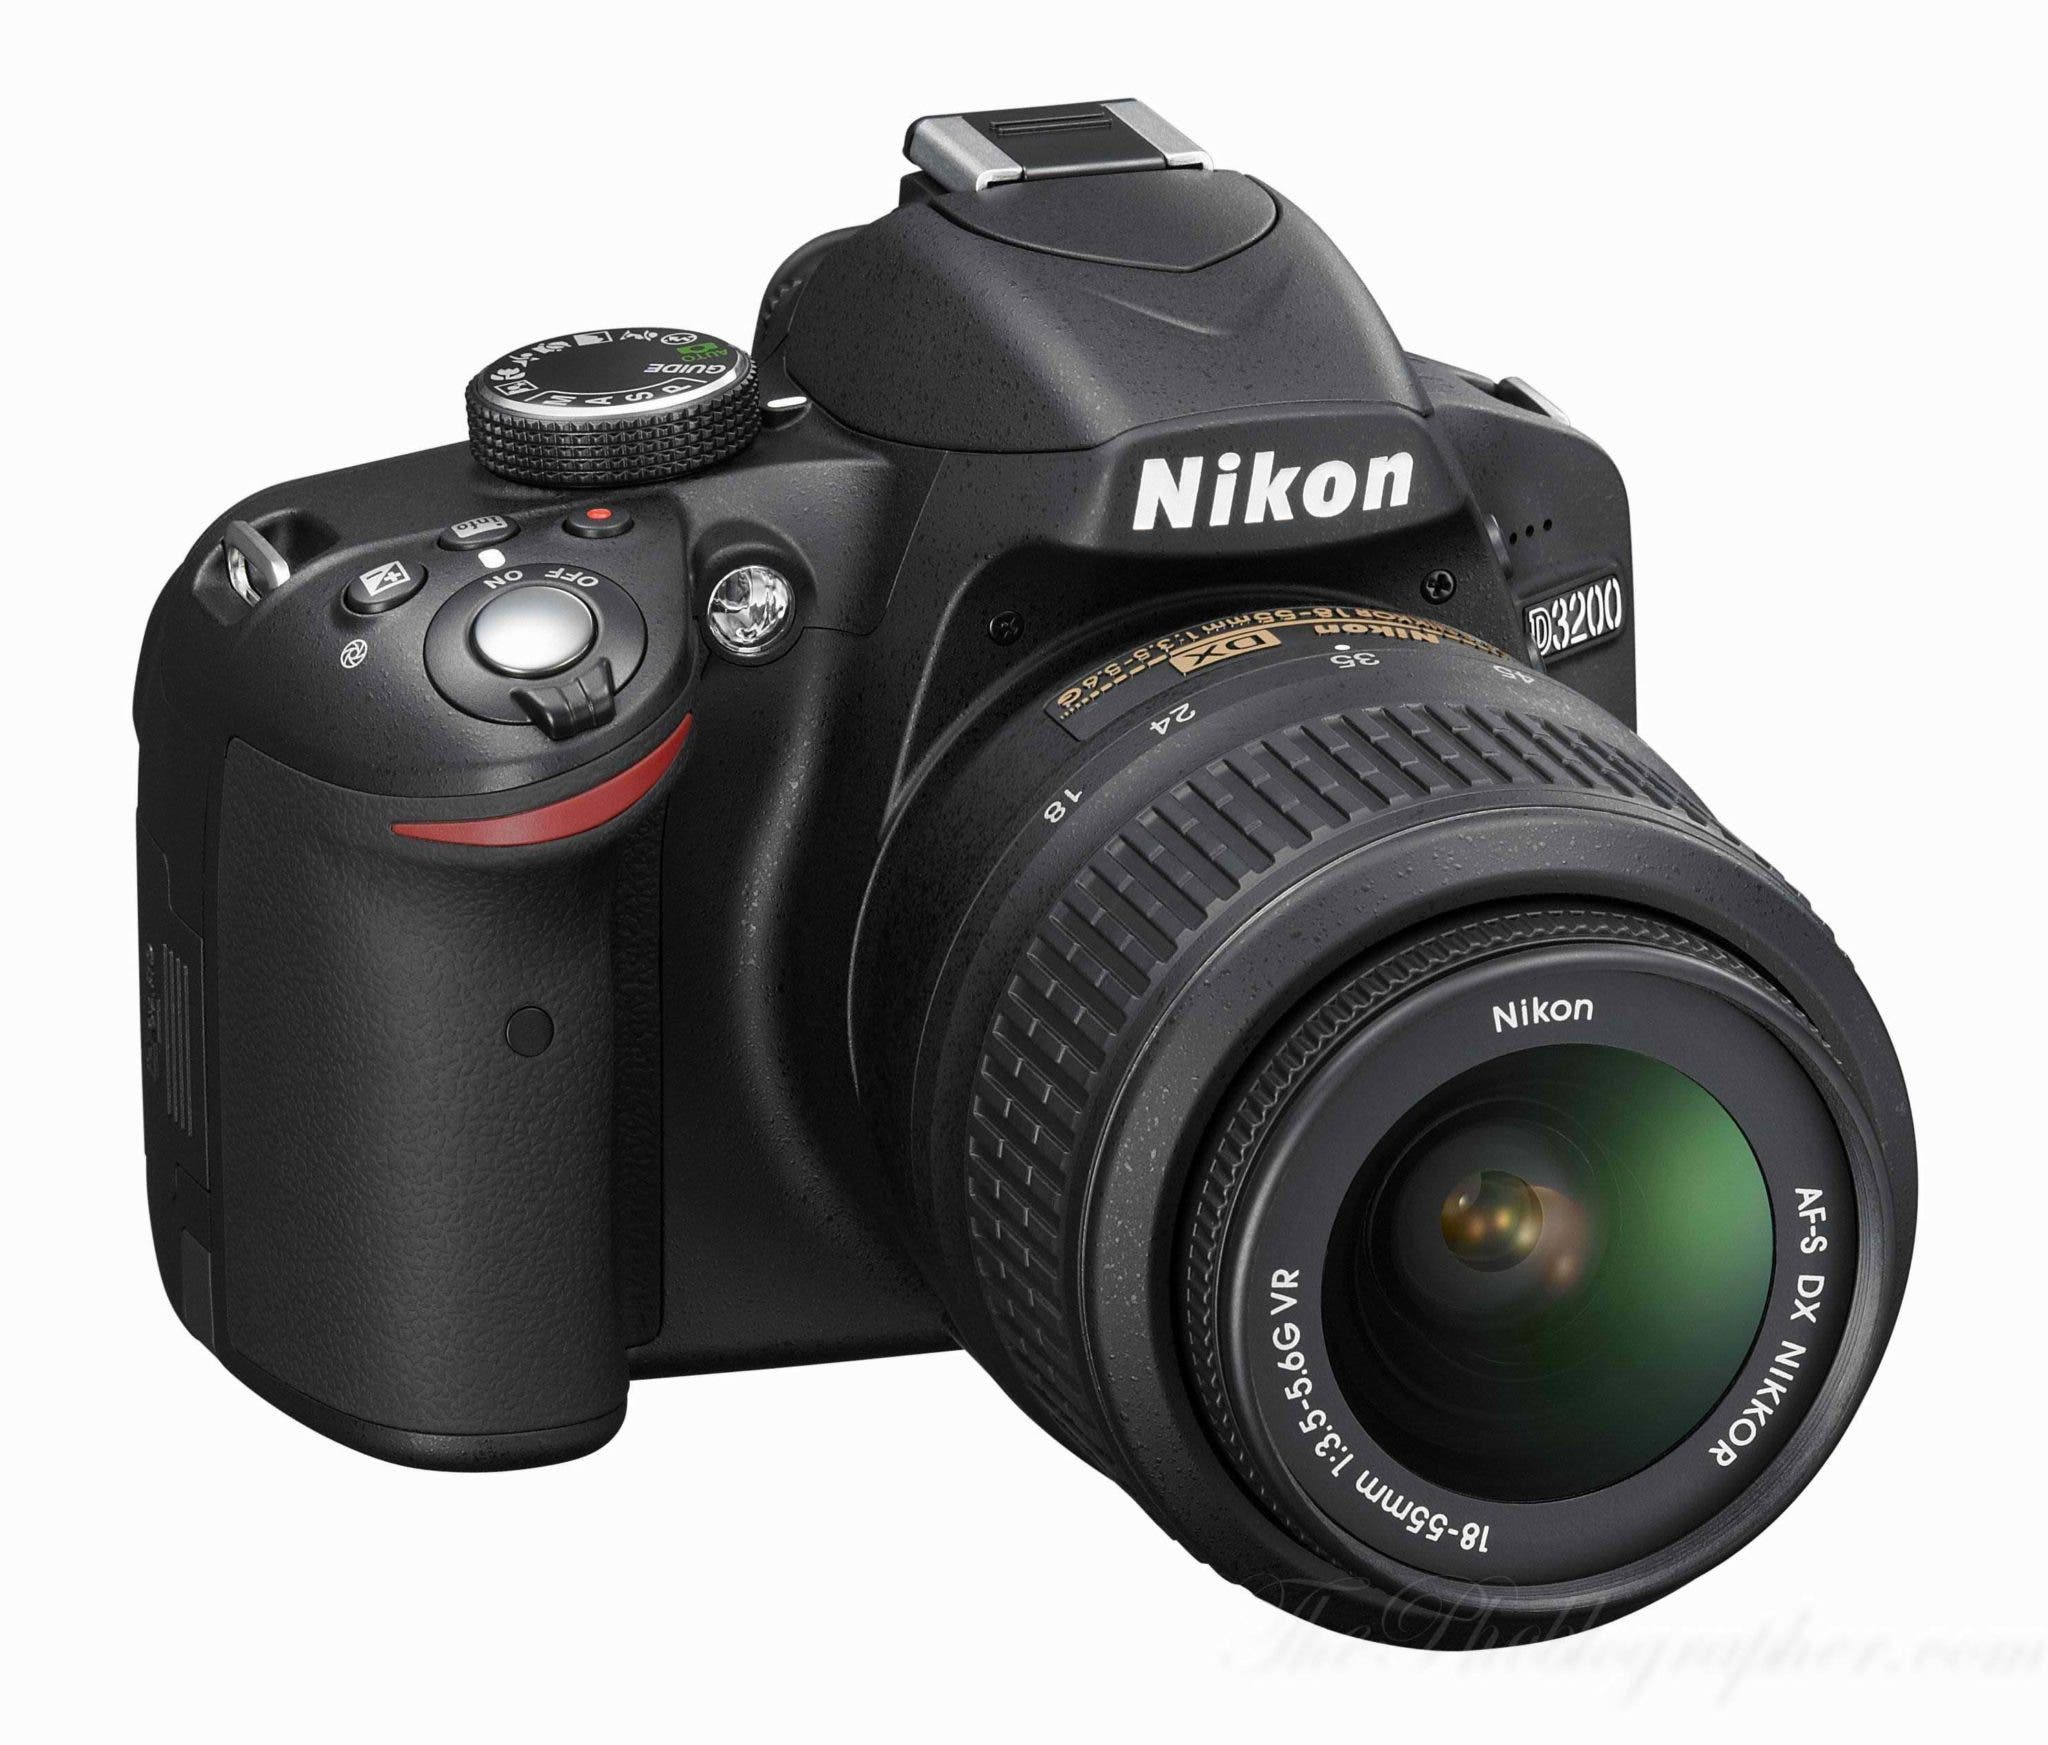 Cheap Photo: The Nikon D3200 Has Instant Savings at B&H Photo; Feels Like a Toy, Shoots Awesome Photos